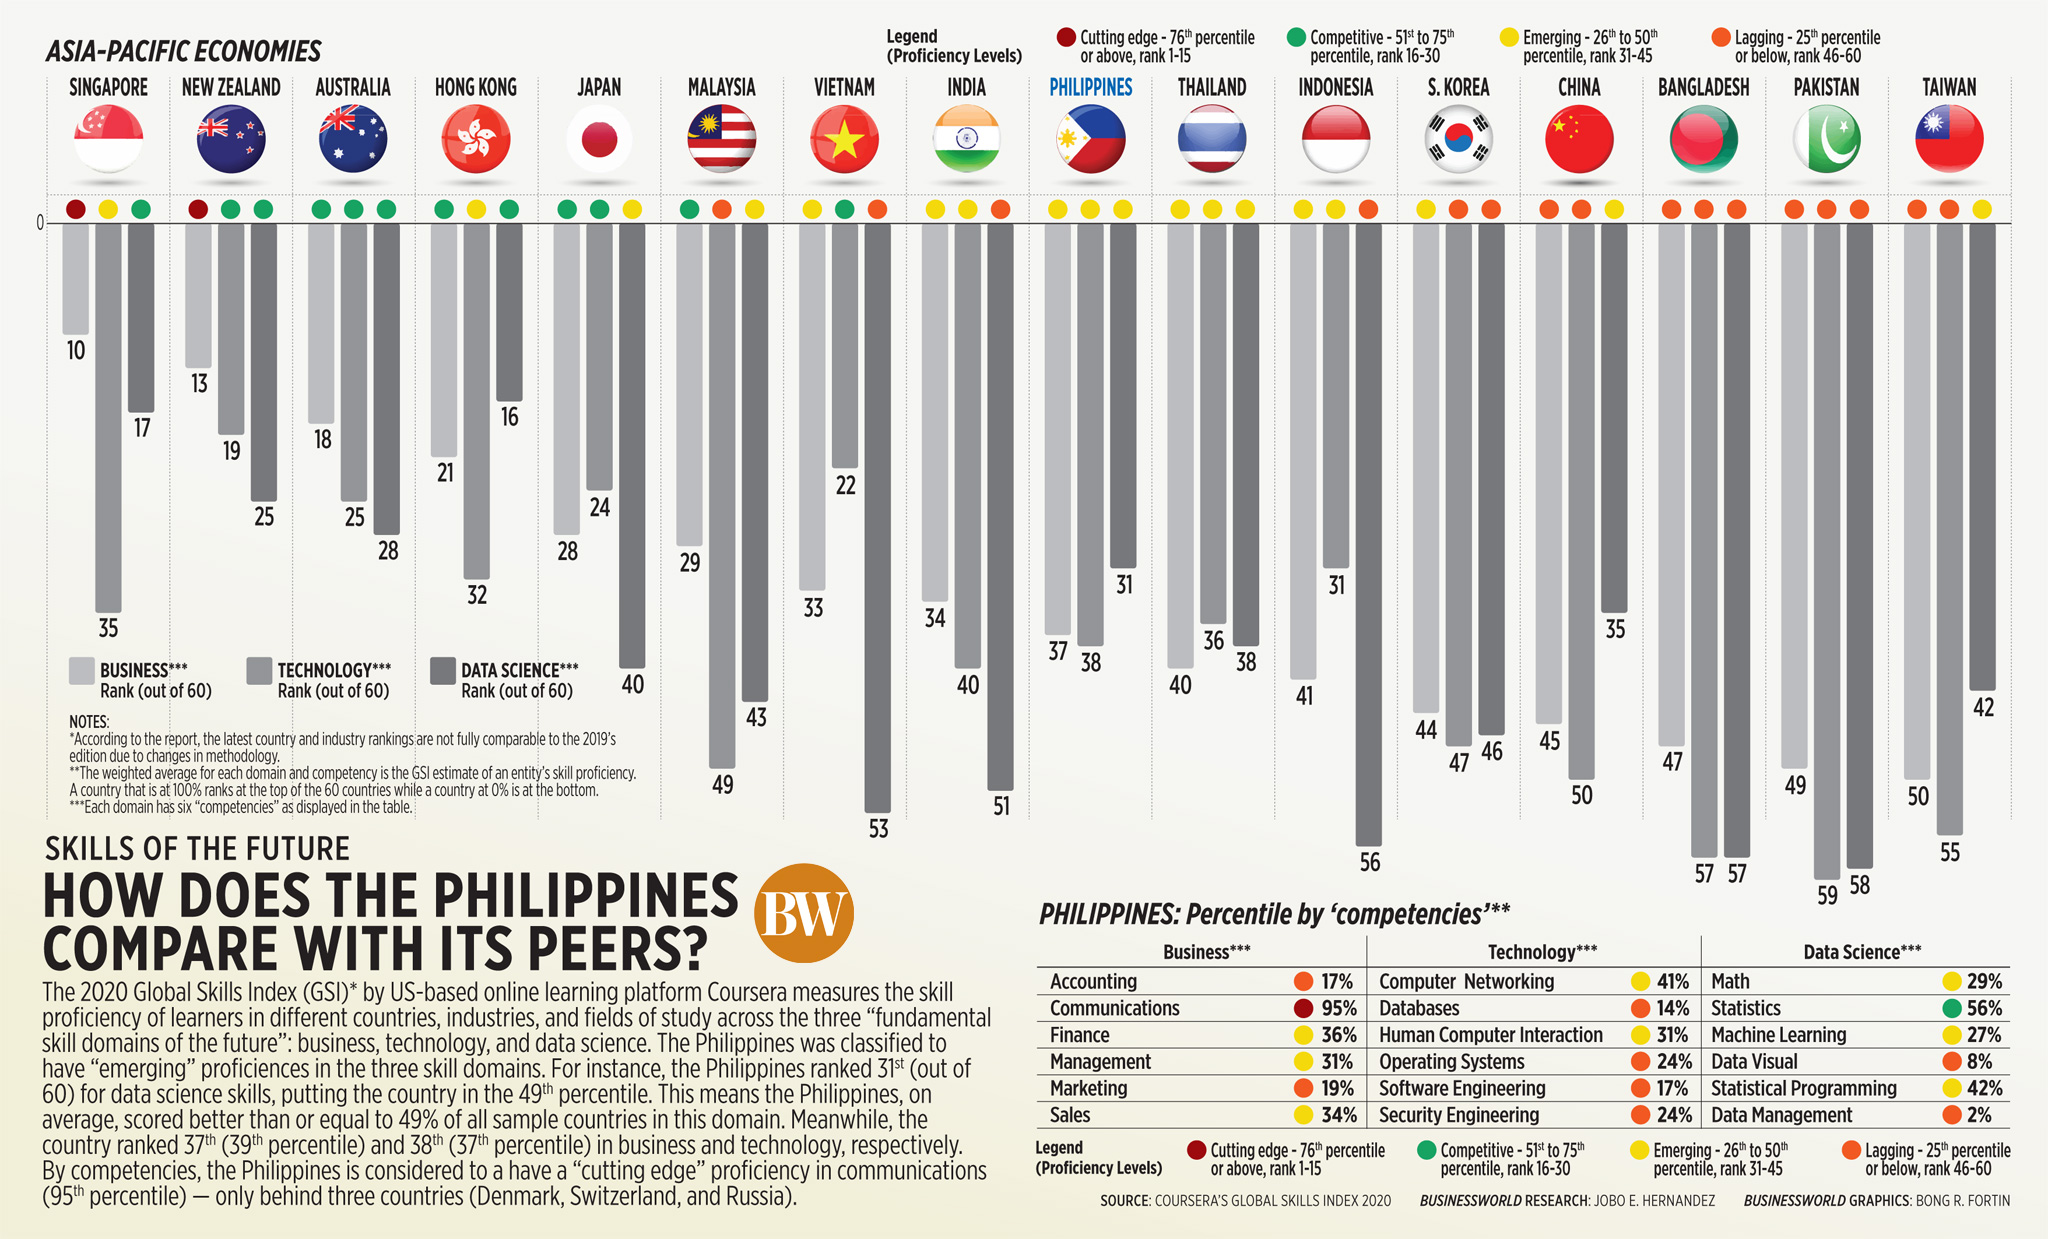 How does the Philippines compare with its peers?